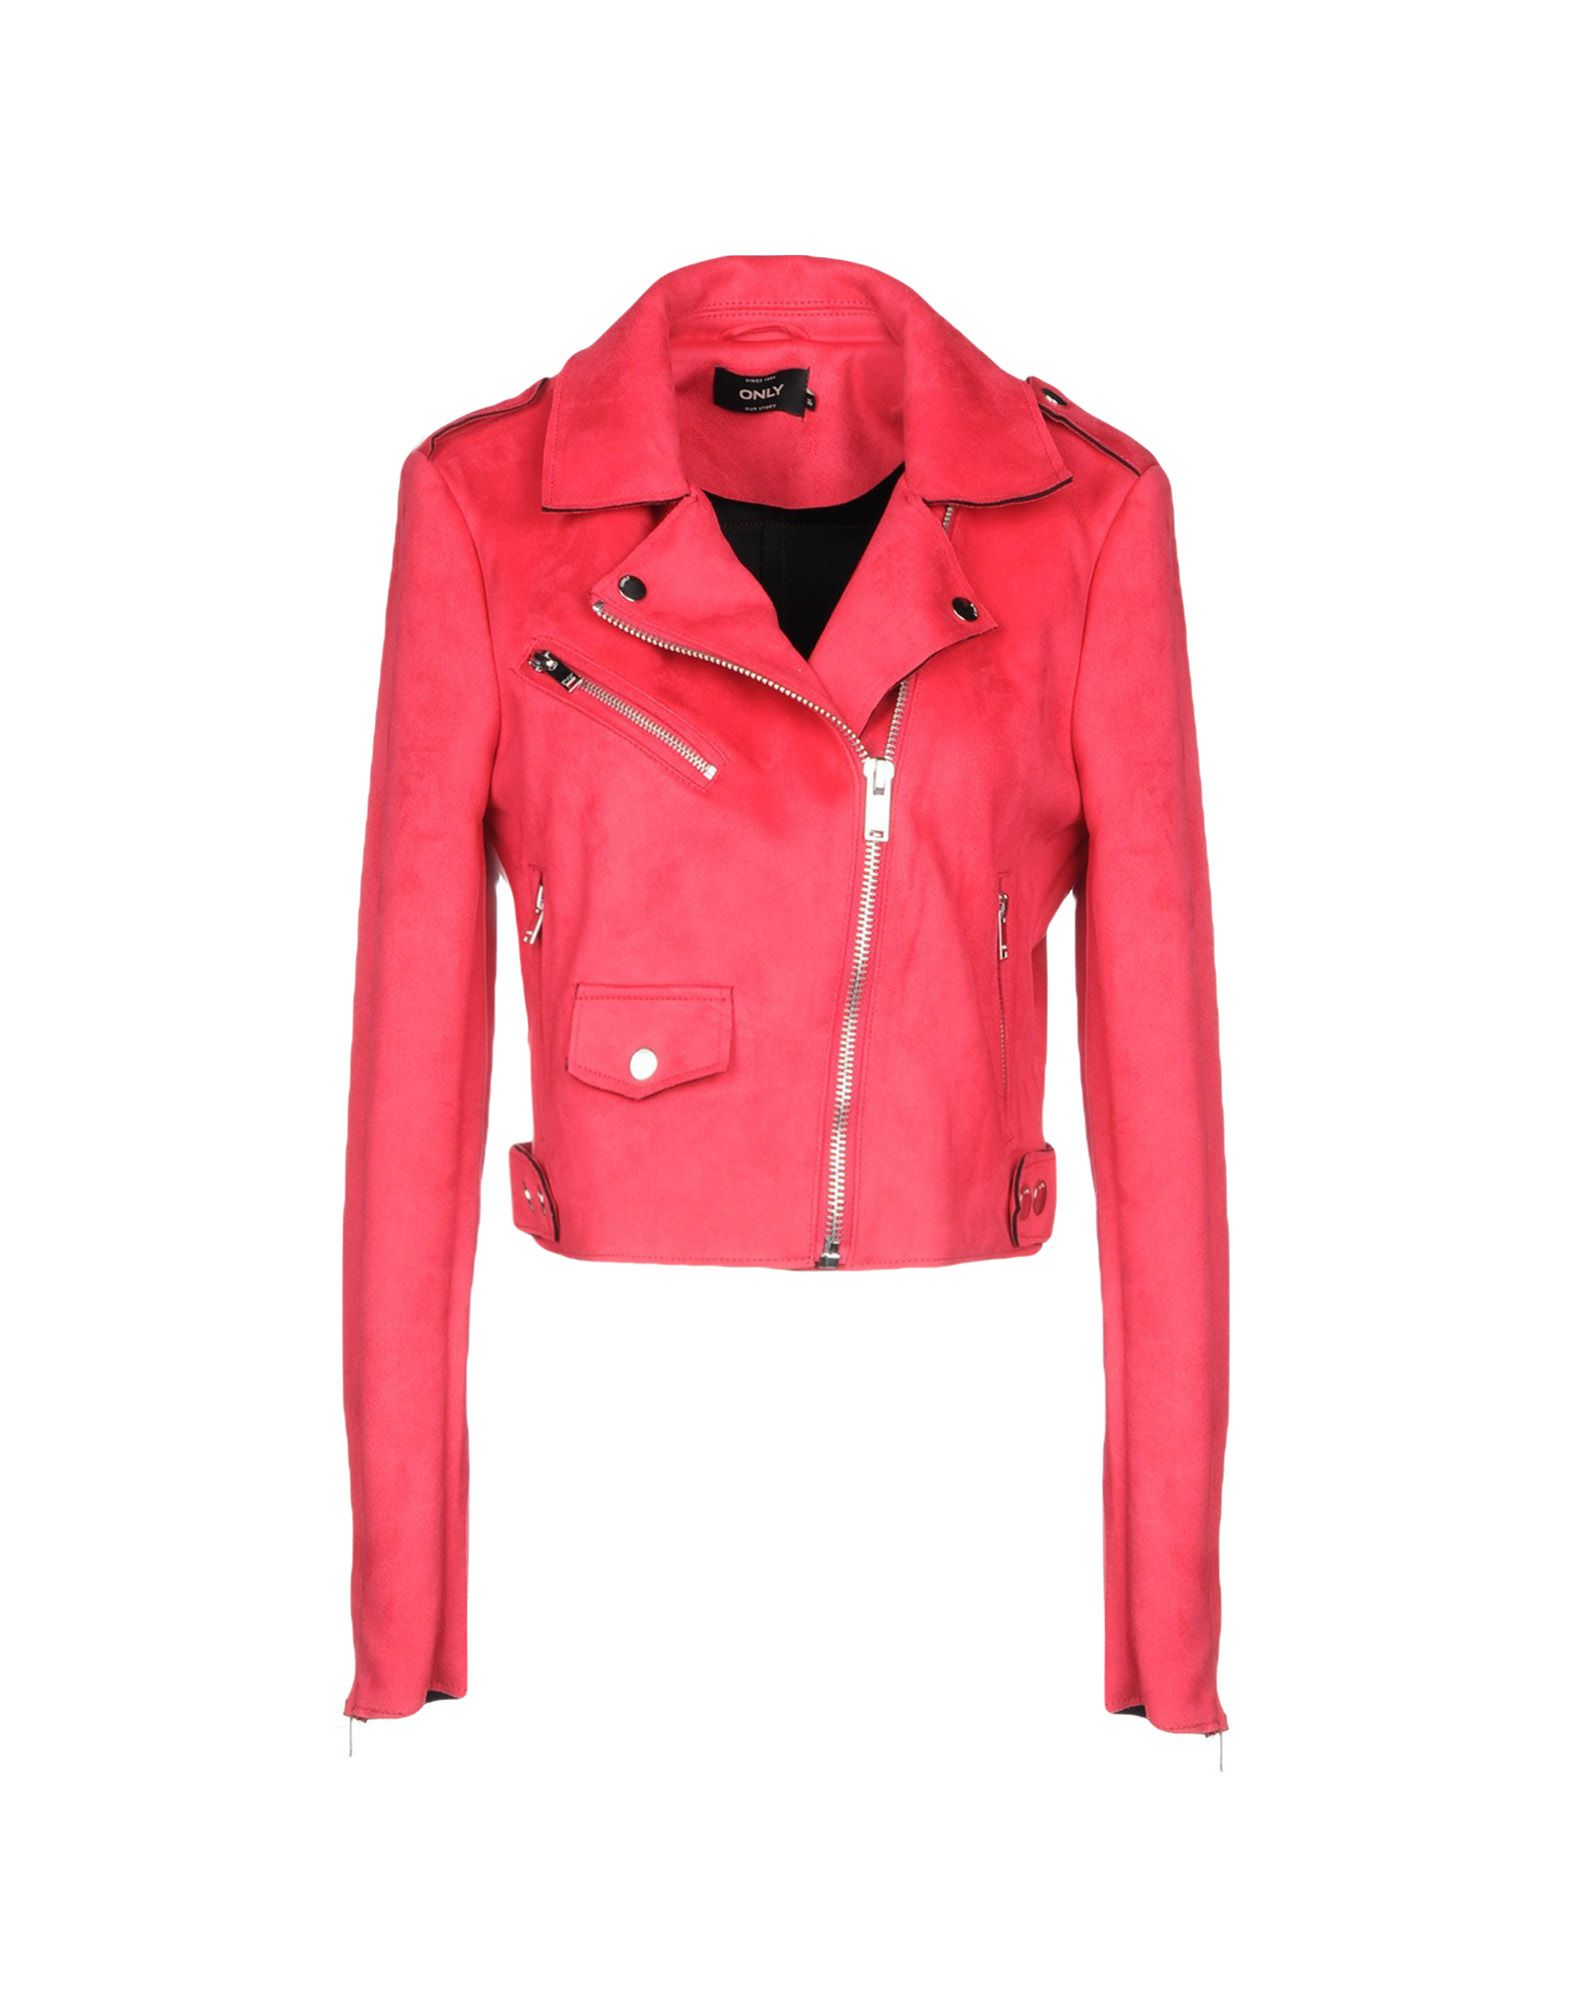 ONLY   ONLY Jackets 41786672   Goxip